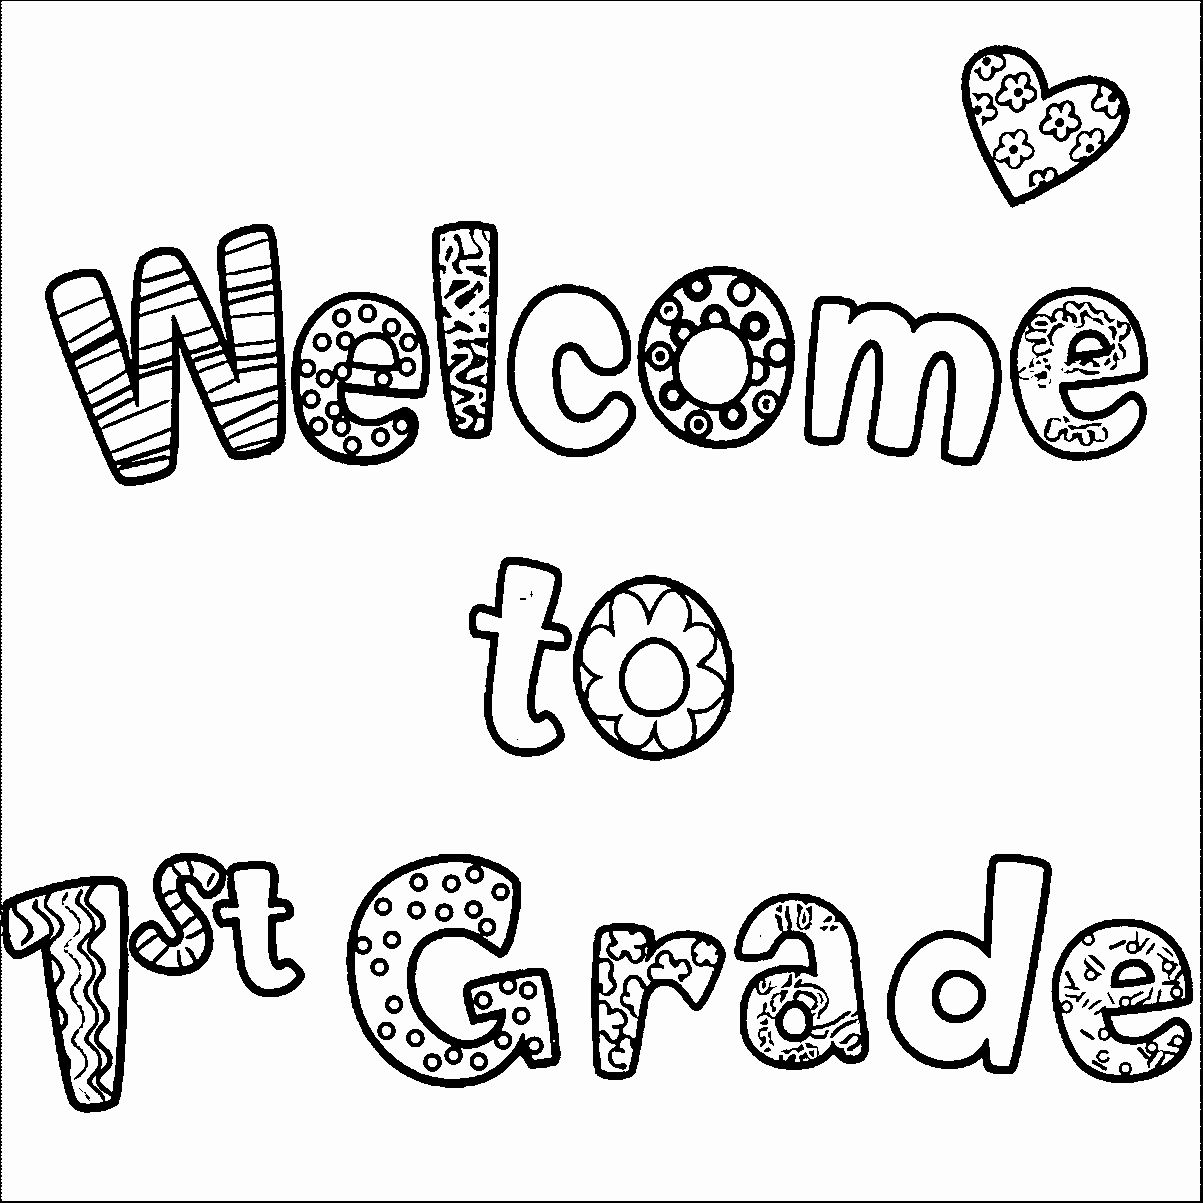 First Grade Coloring Worksheets Awesome Coloring Pages 63 1st Grade Coloring Worksheets Im Kindergarten Coloring Pages Color Worksheets Welcome To Kindergarten [ 1203 x 1203 Pixel ]